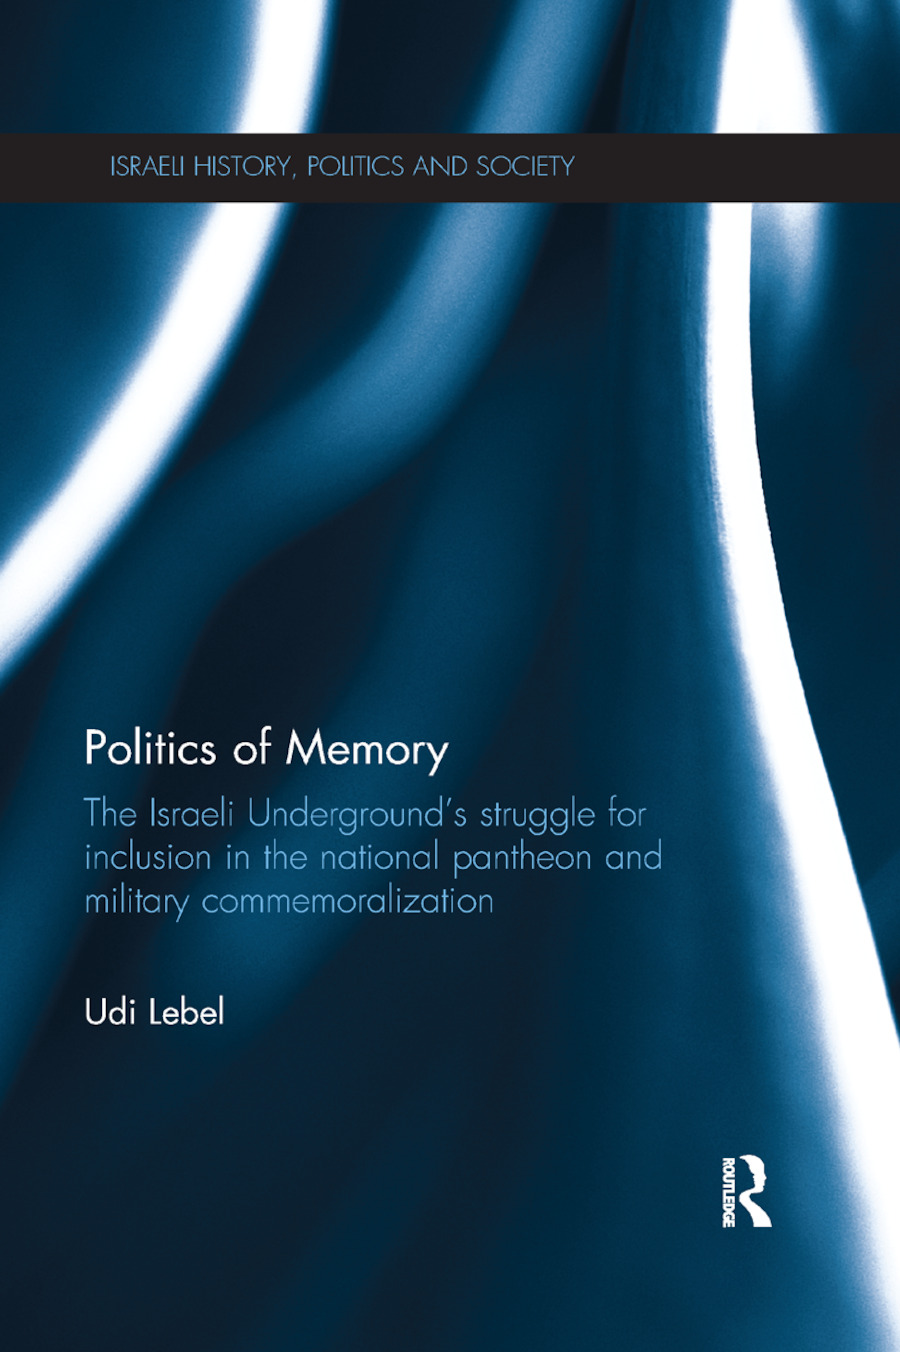 Politics of Memory: The Israeli Underground's Struggle for Inclusion in the National Pantheon and Military Commemoralization book cover